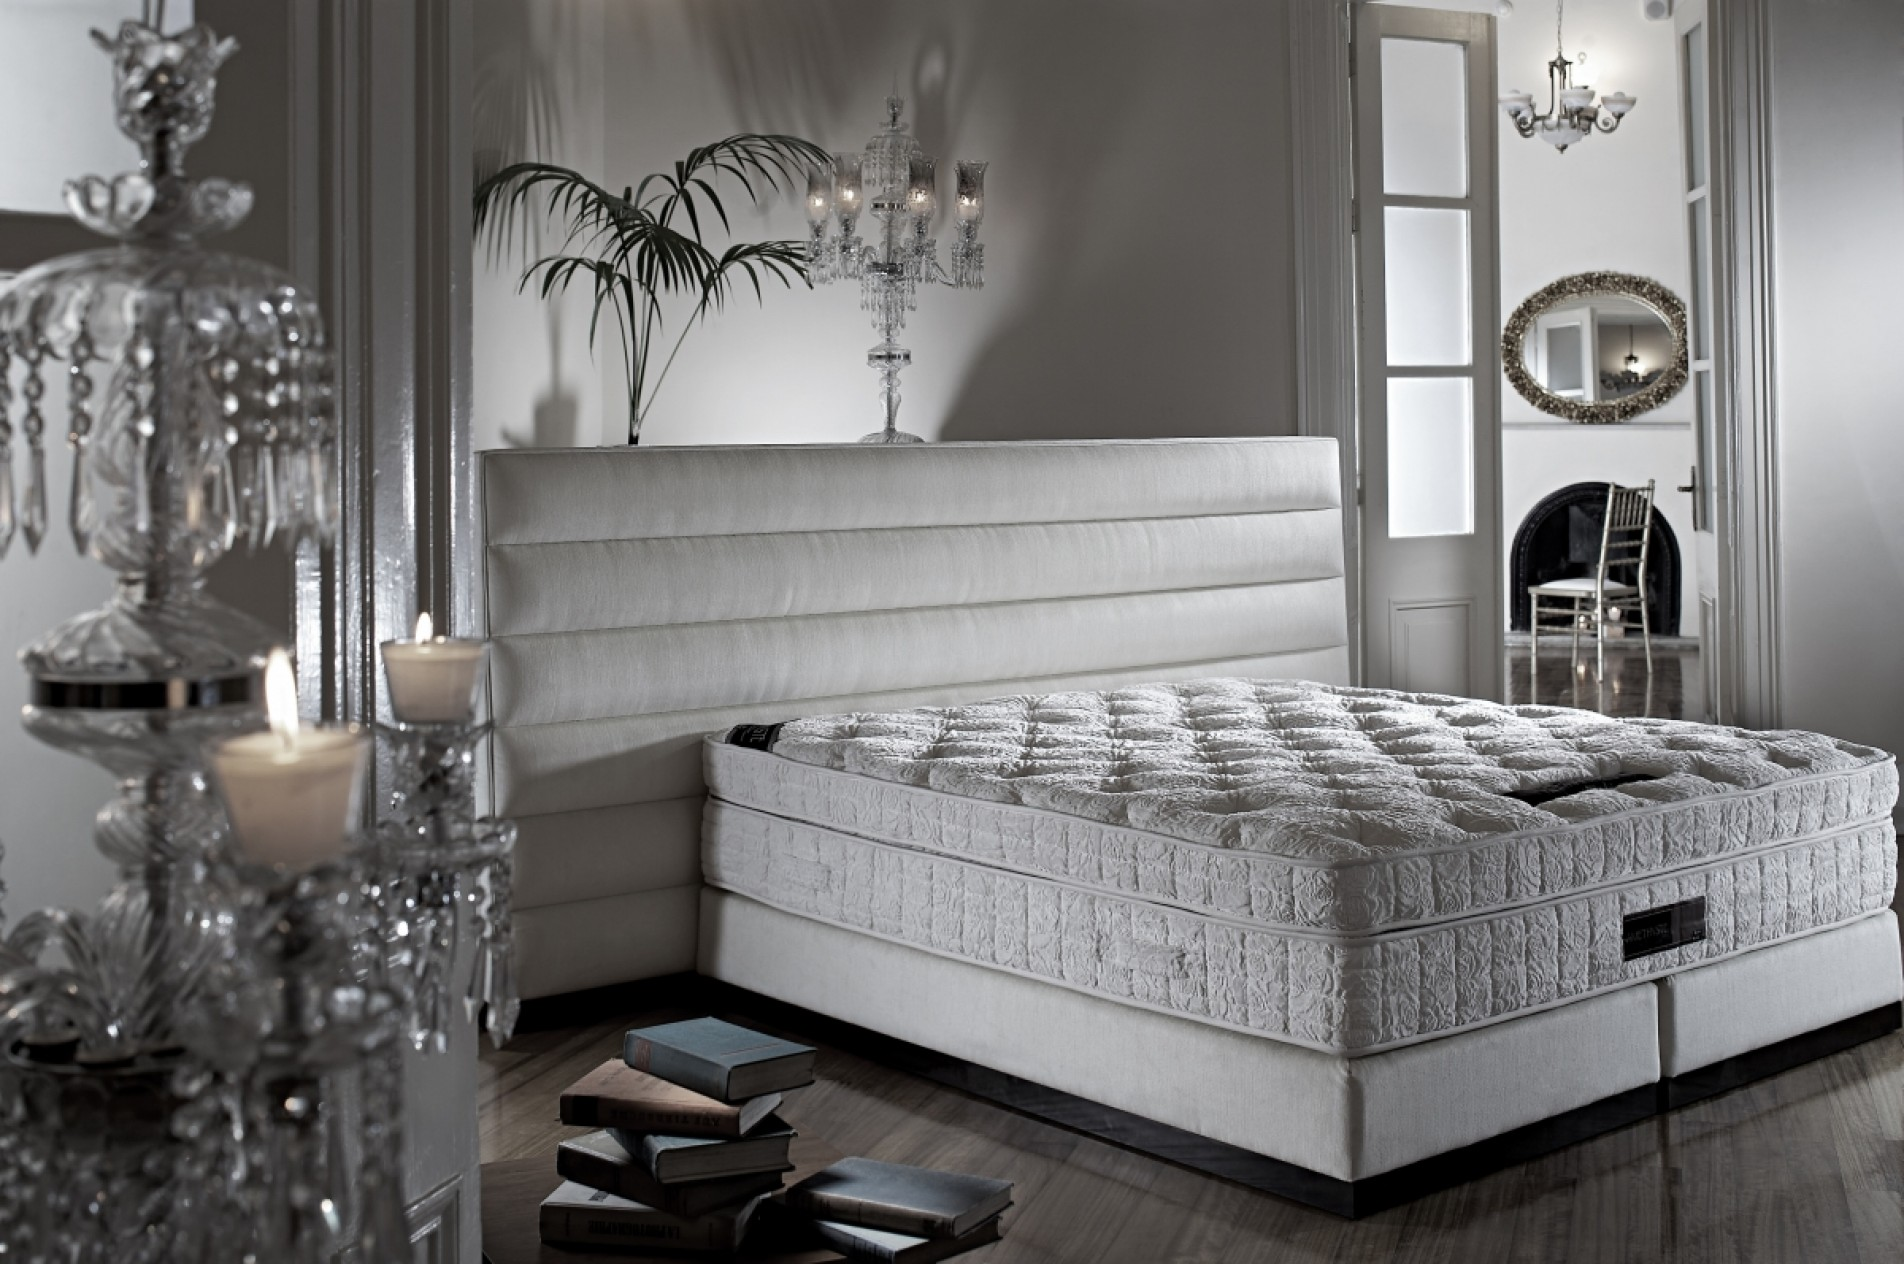 matelas amethyste modulance. Black Bedroom Furniture Sets. Home Design Ideas